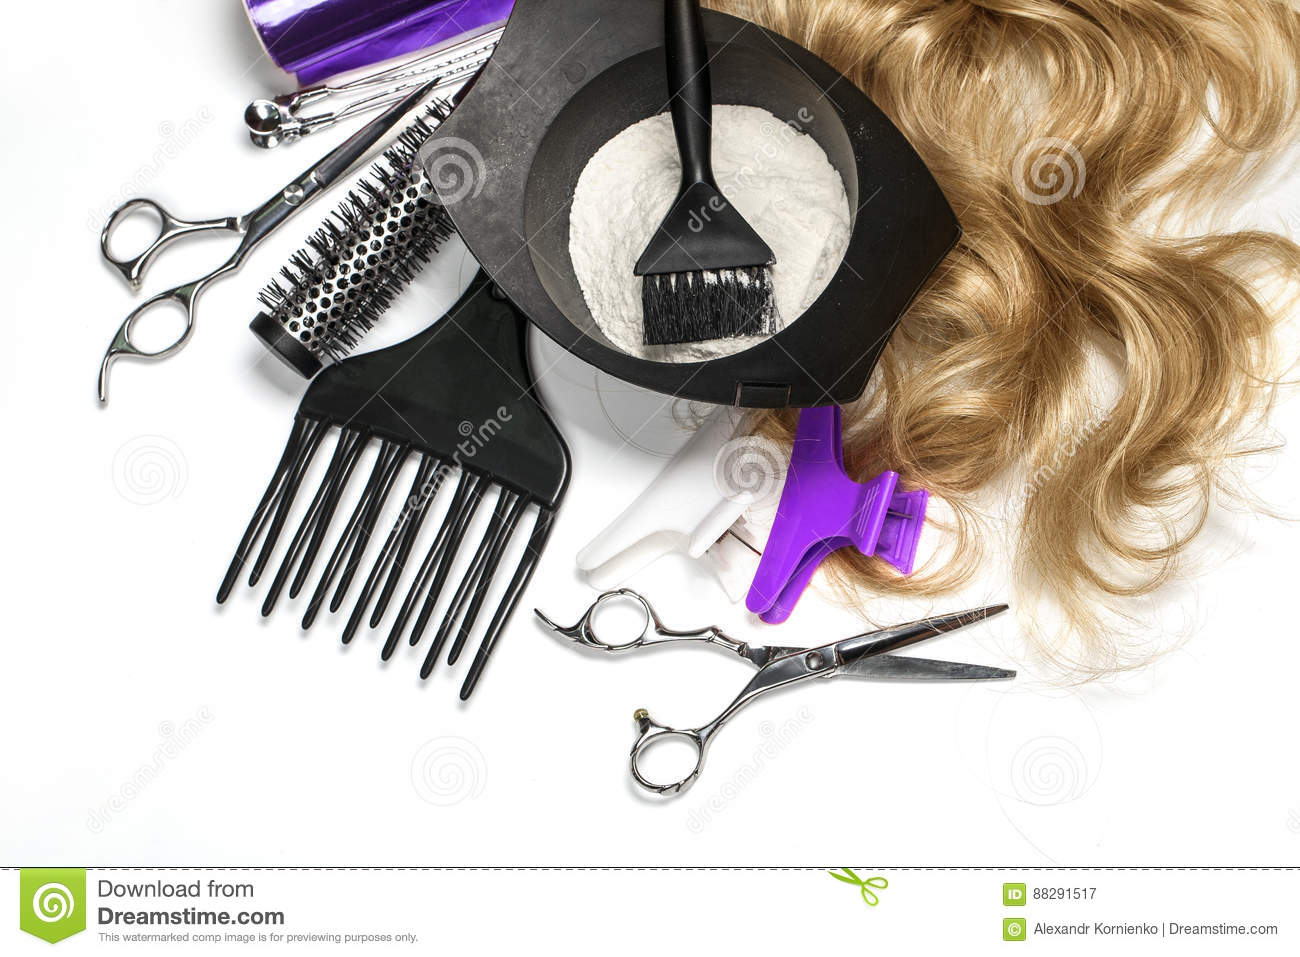 Hairdresser Accessories For Coloring Hair Stock Image - Image of ...